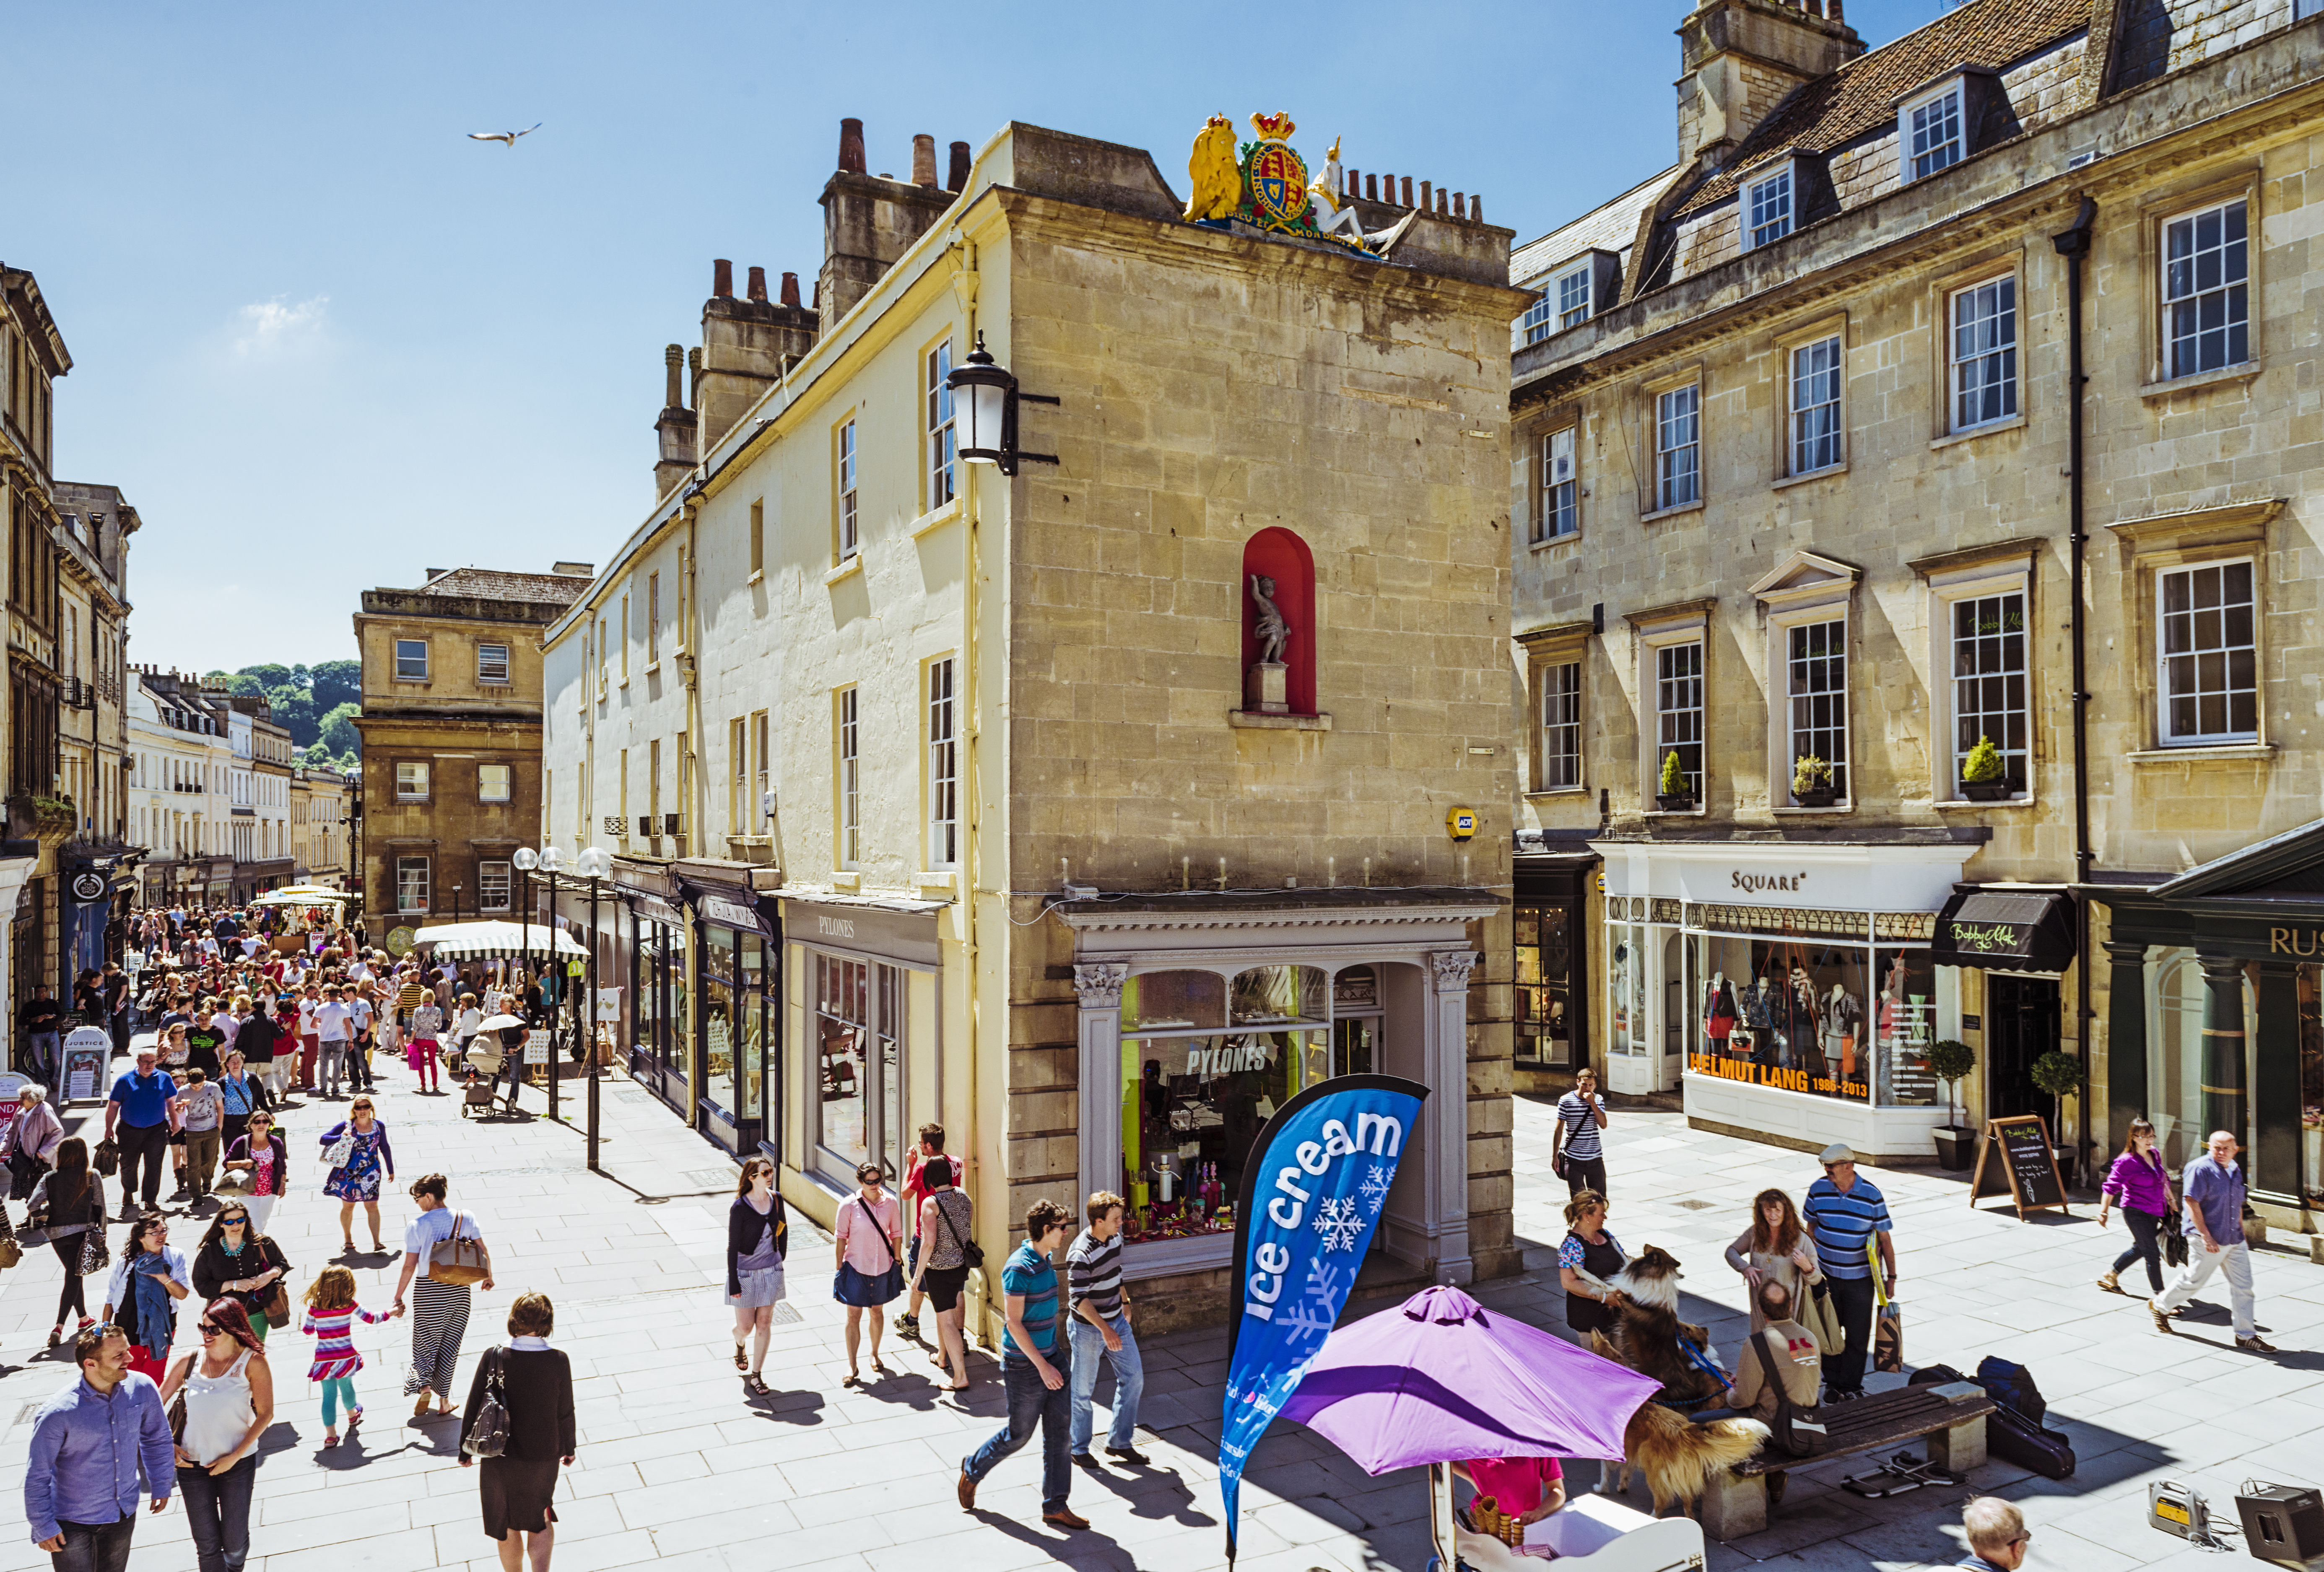 Milsom street in Bath city centre